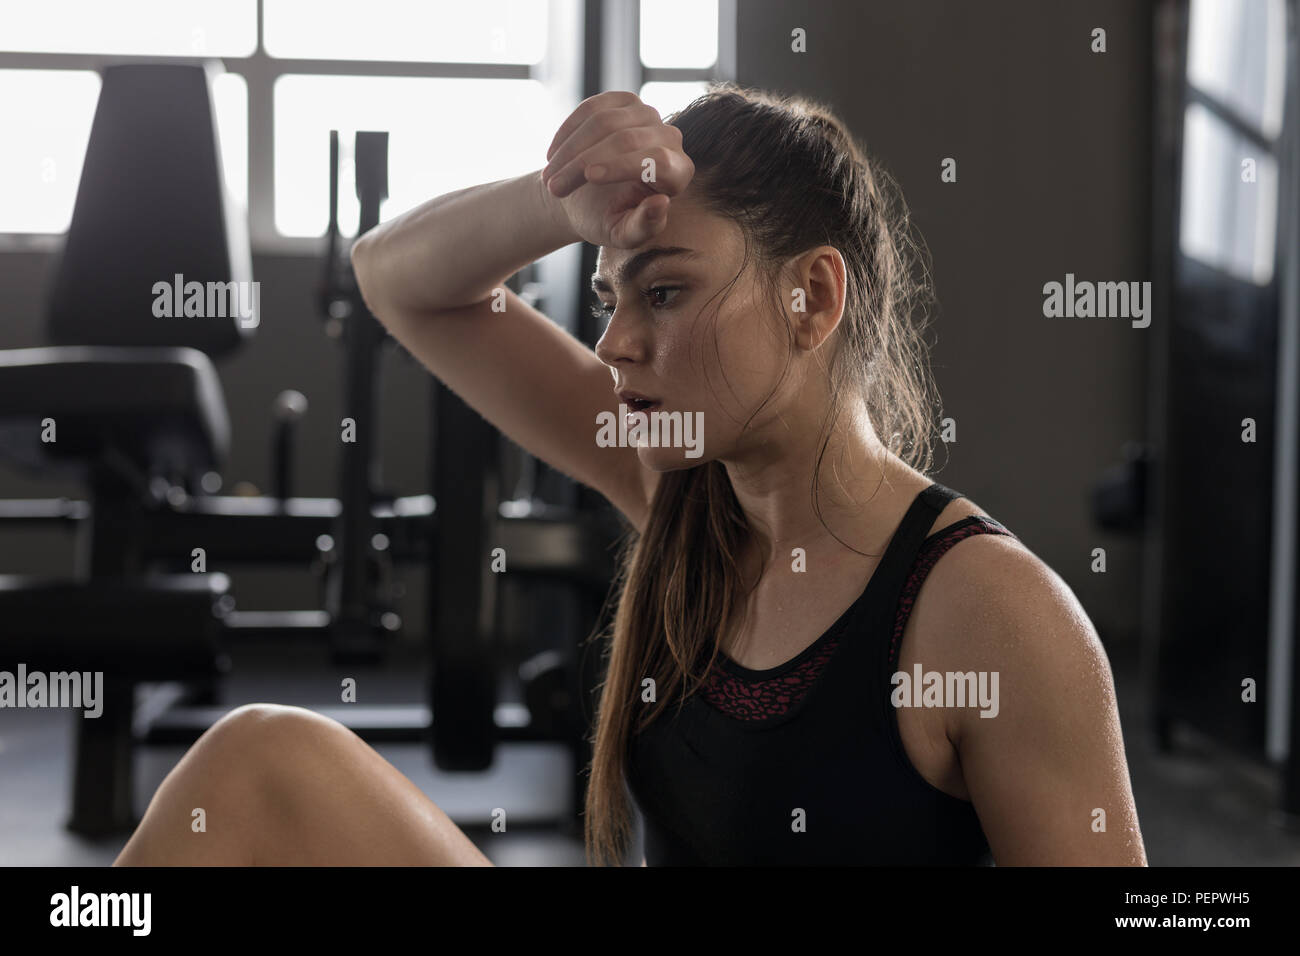 Woman wipes sweat after workout in fitness studio - Stock Image